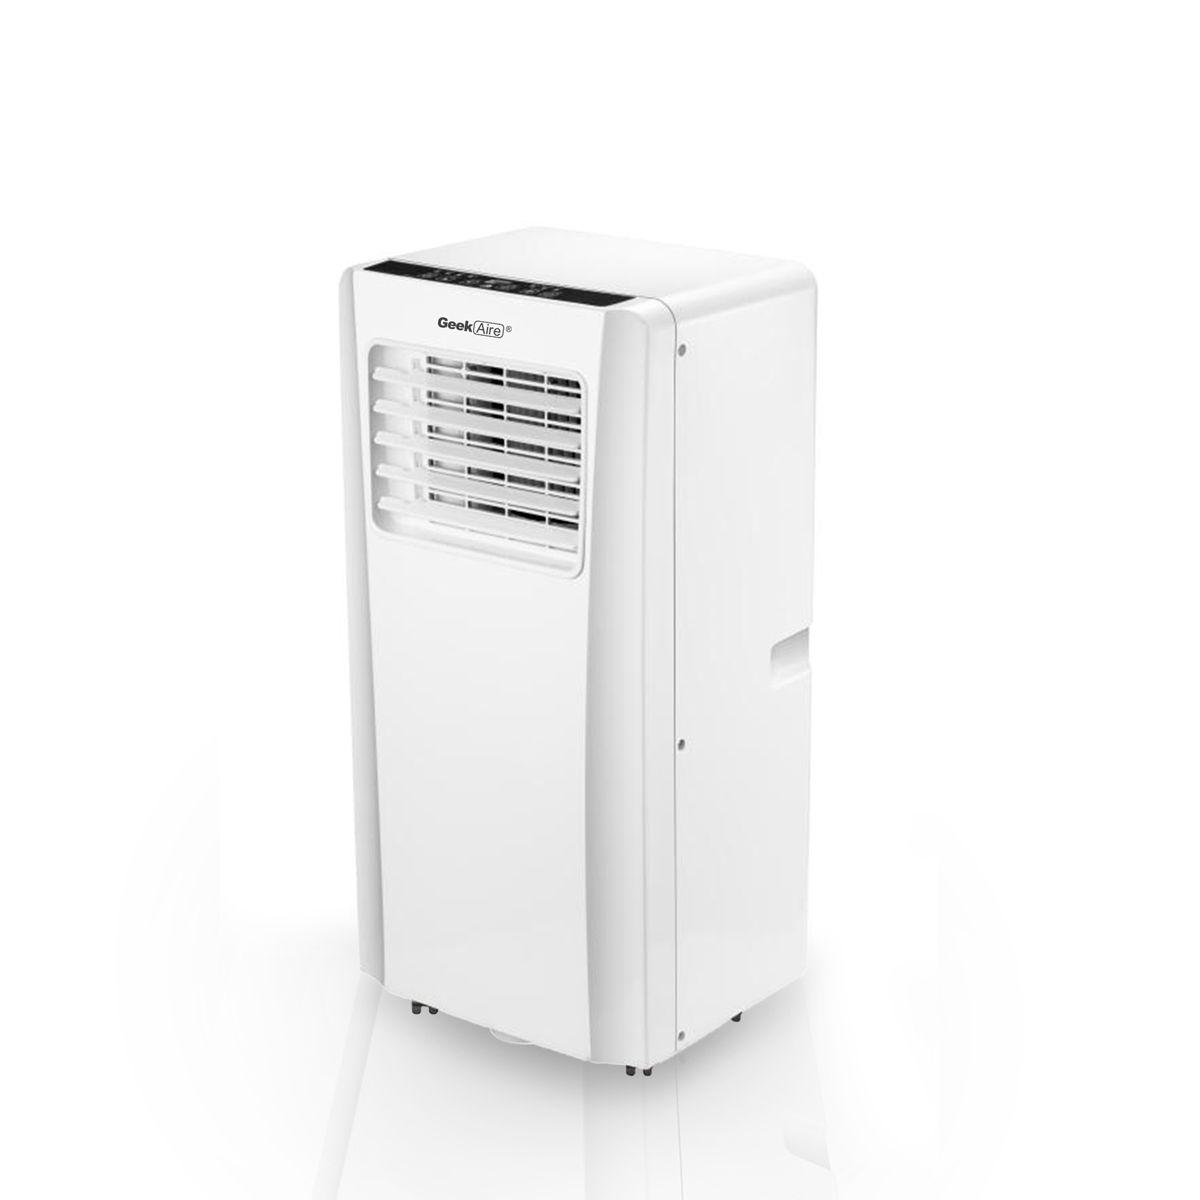 Geek Kool Portable 3-In-1 Air Conditioner (1.0 Ton)